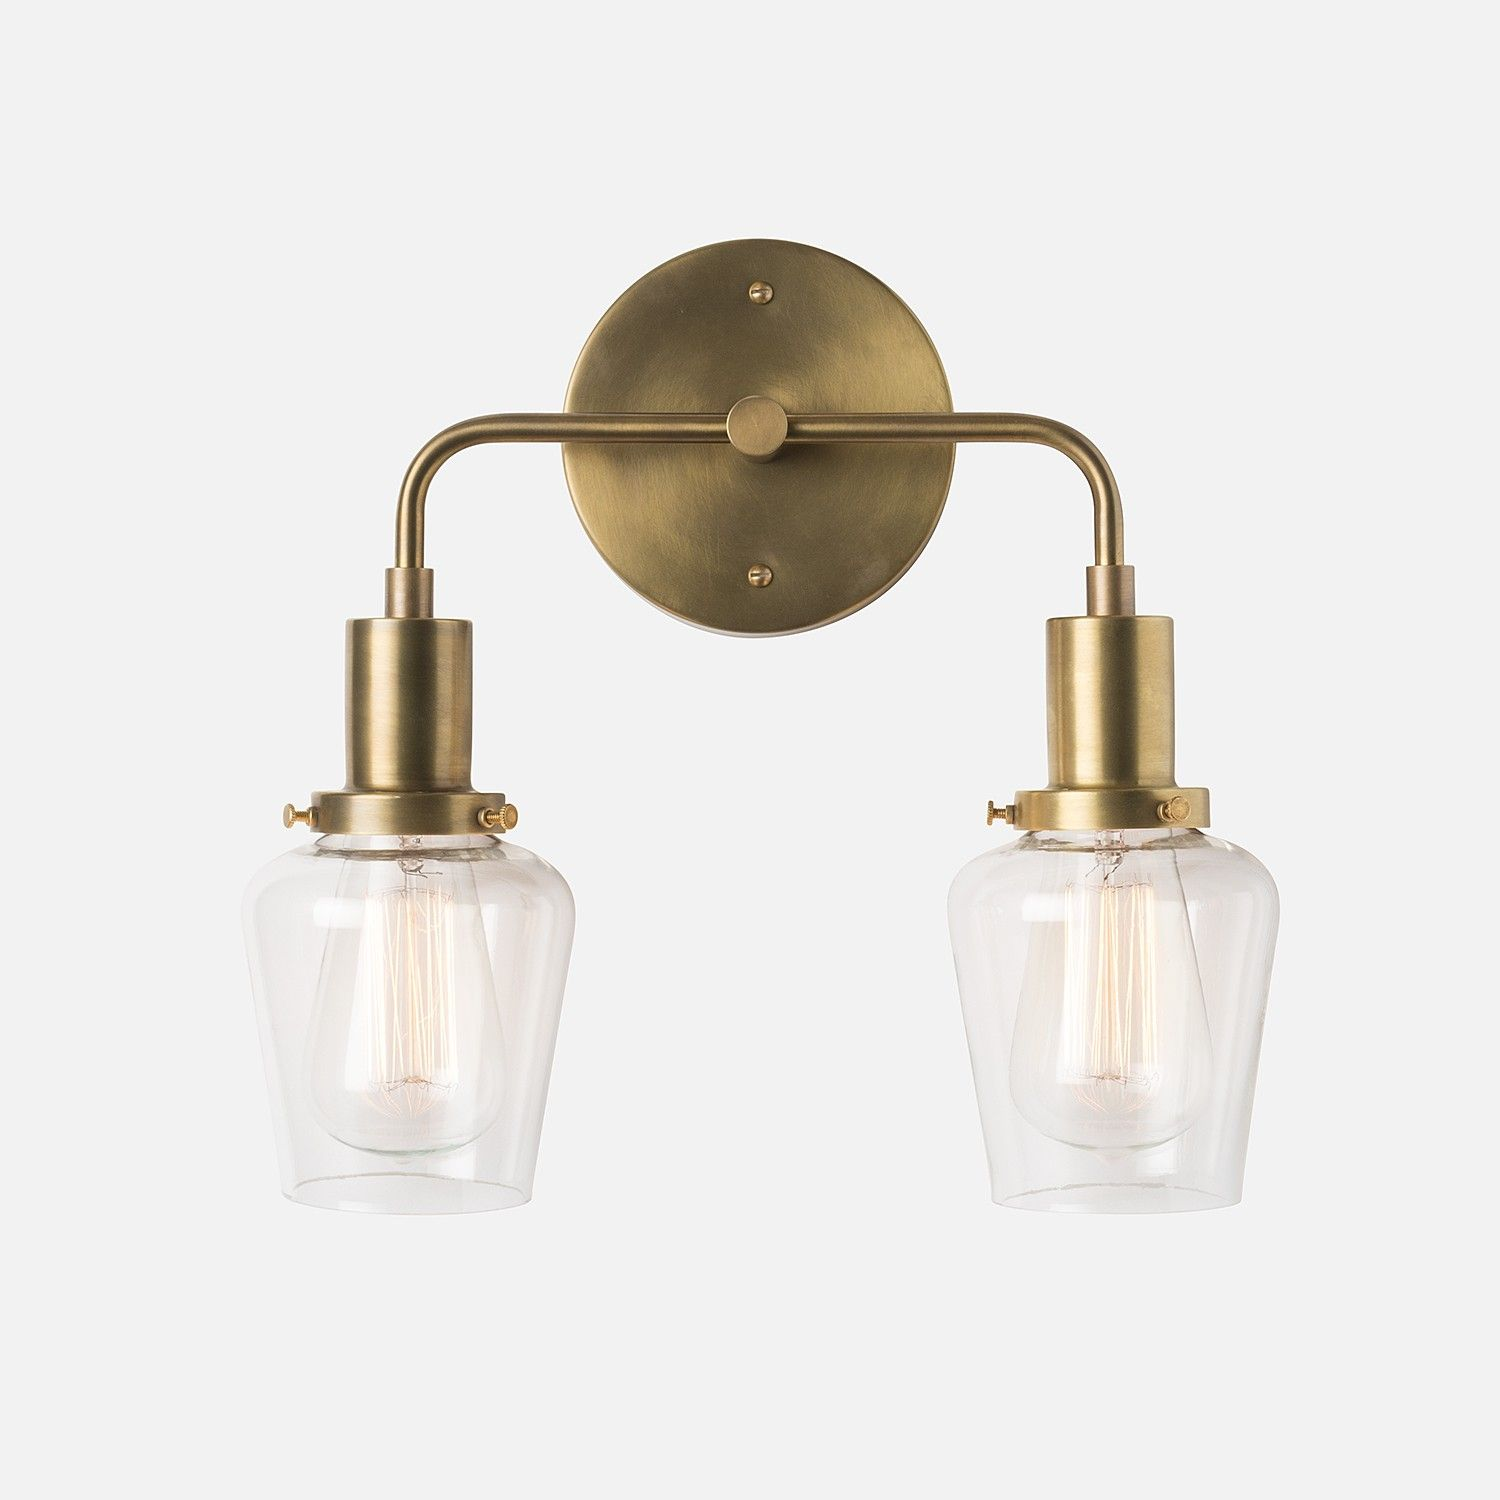 Abrams Double Sconce 2 25""